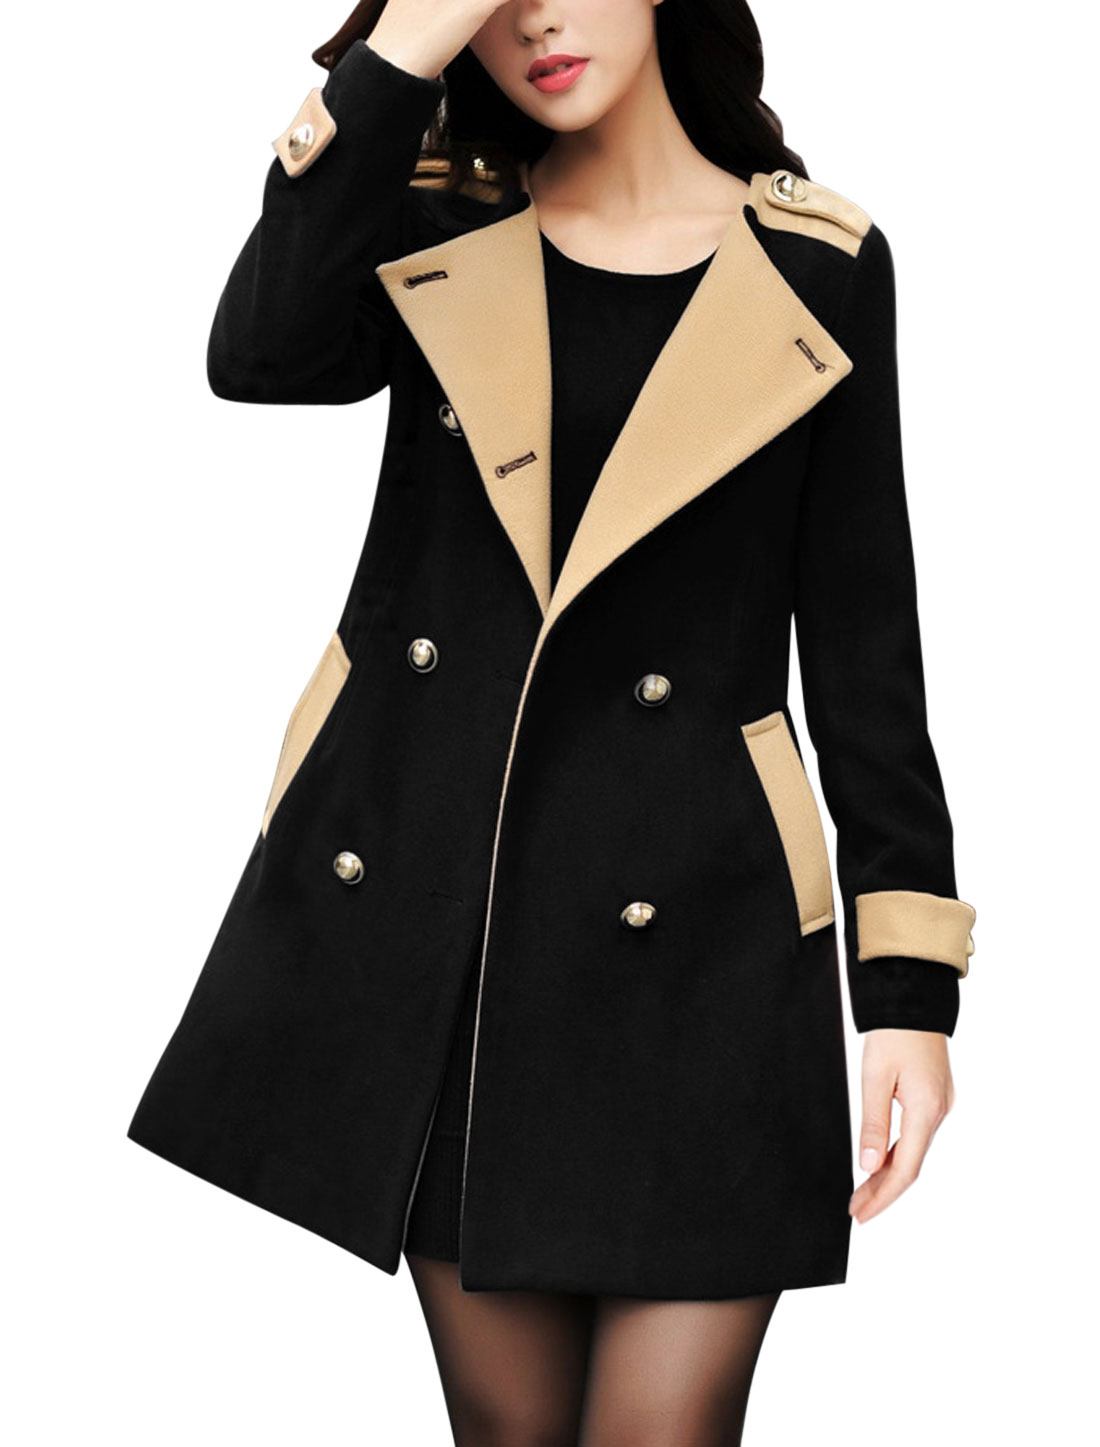 Women Single Breasted Double Slant Pockets Button-Tab Back Peacoat Black M